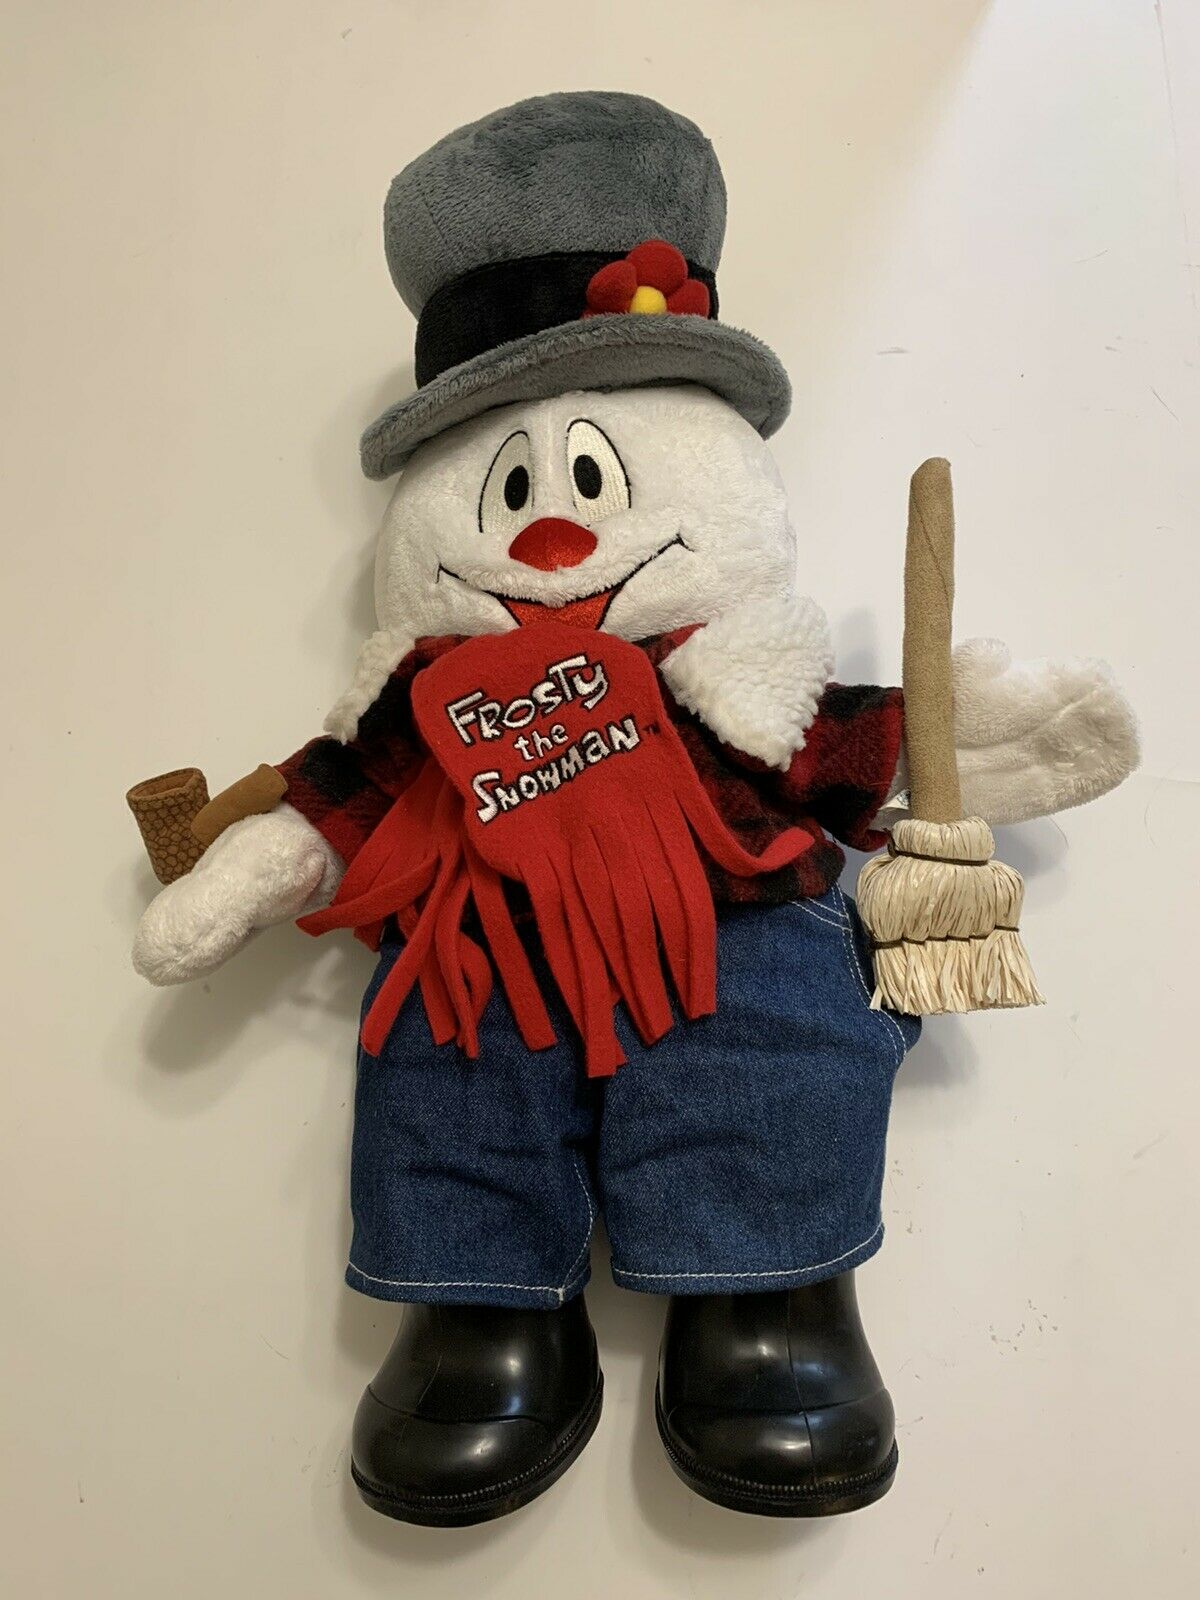 Frosty The Snowman BUILD A BEAR 18  Lights Up,Jeans,Shirt,Scarf,Broom,Pipe,schuhe